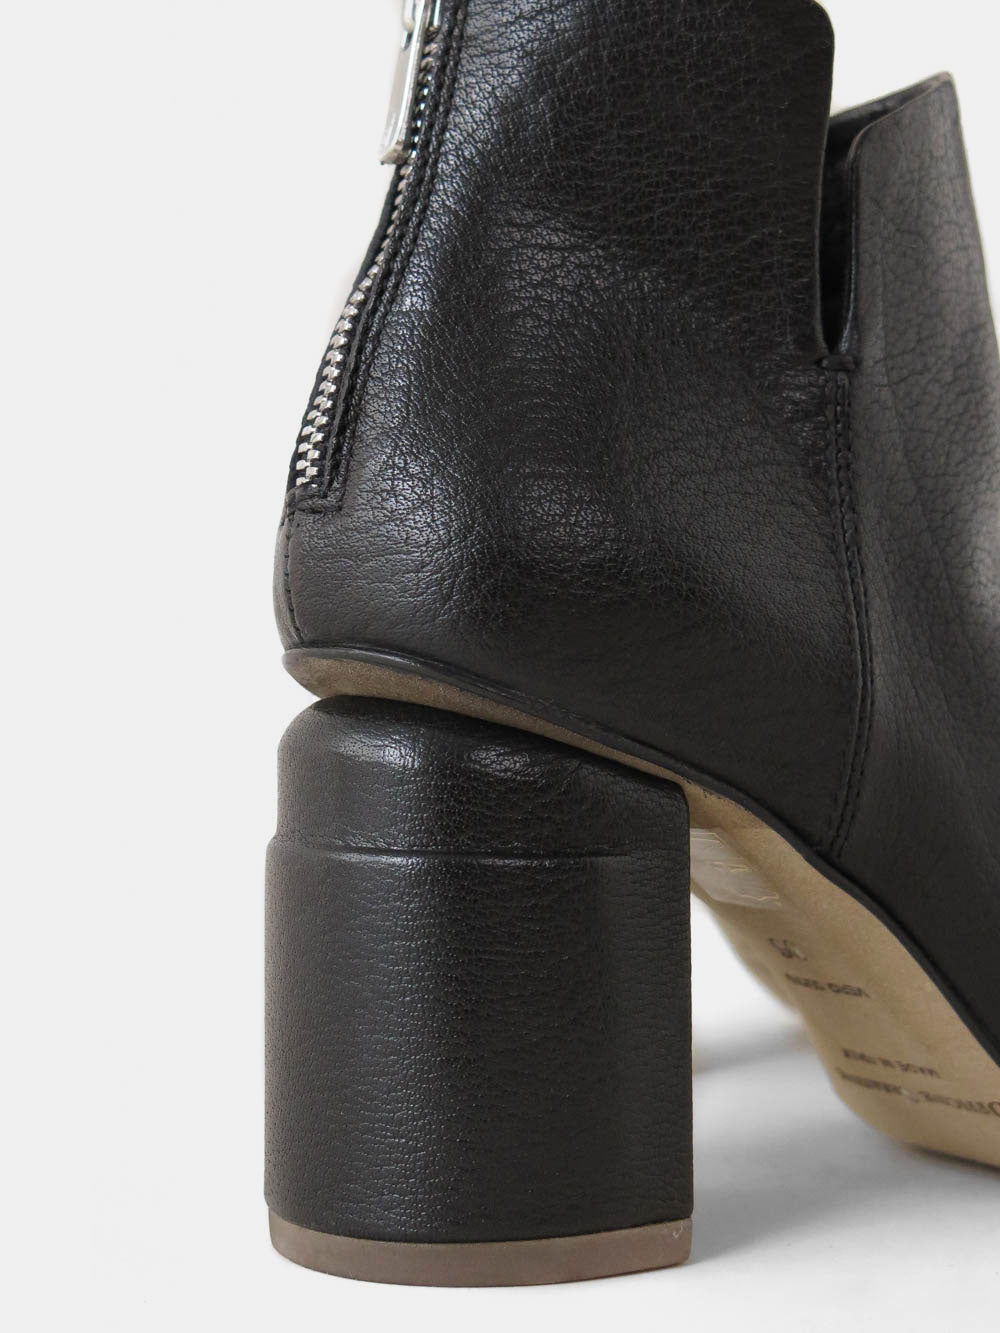 officine creative emilie boot in nero